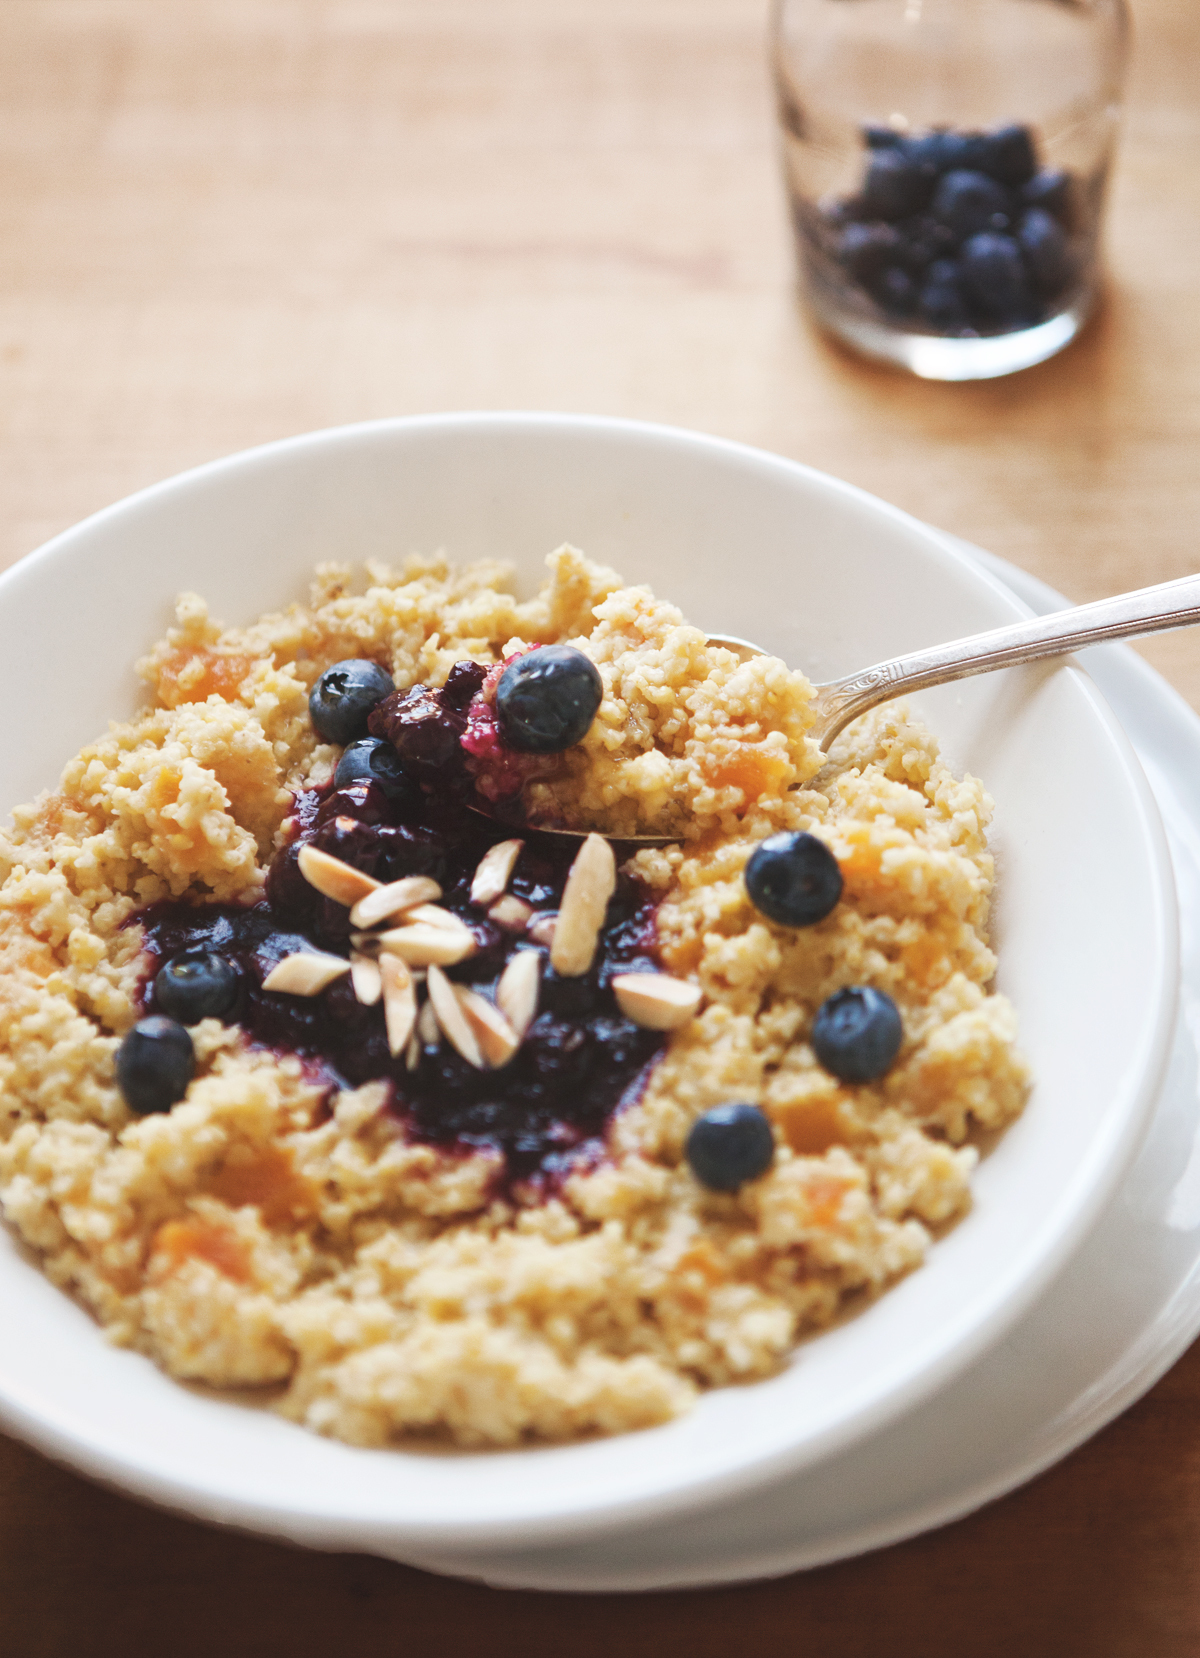 Honey-Apricot-Millet-with-Blueberry-Compote-and-Toasted-Almonds_0101.jpg